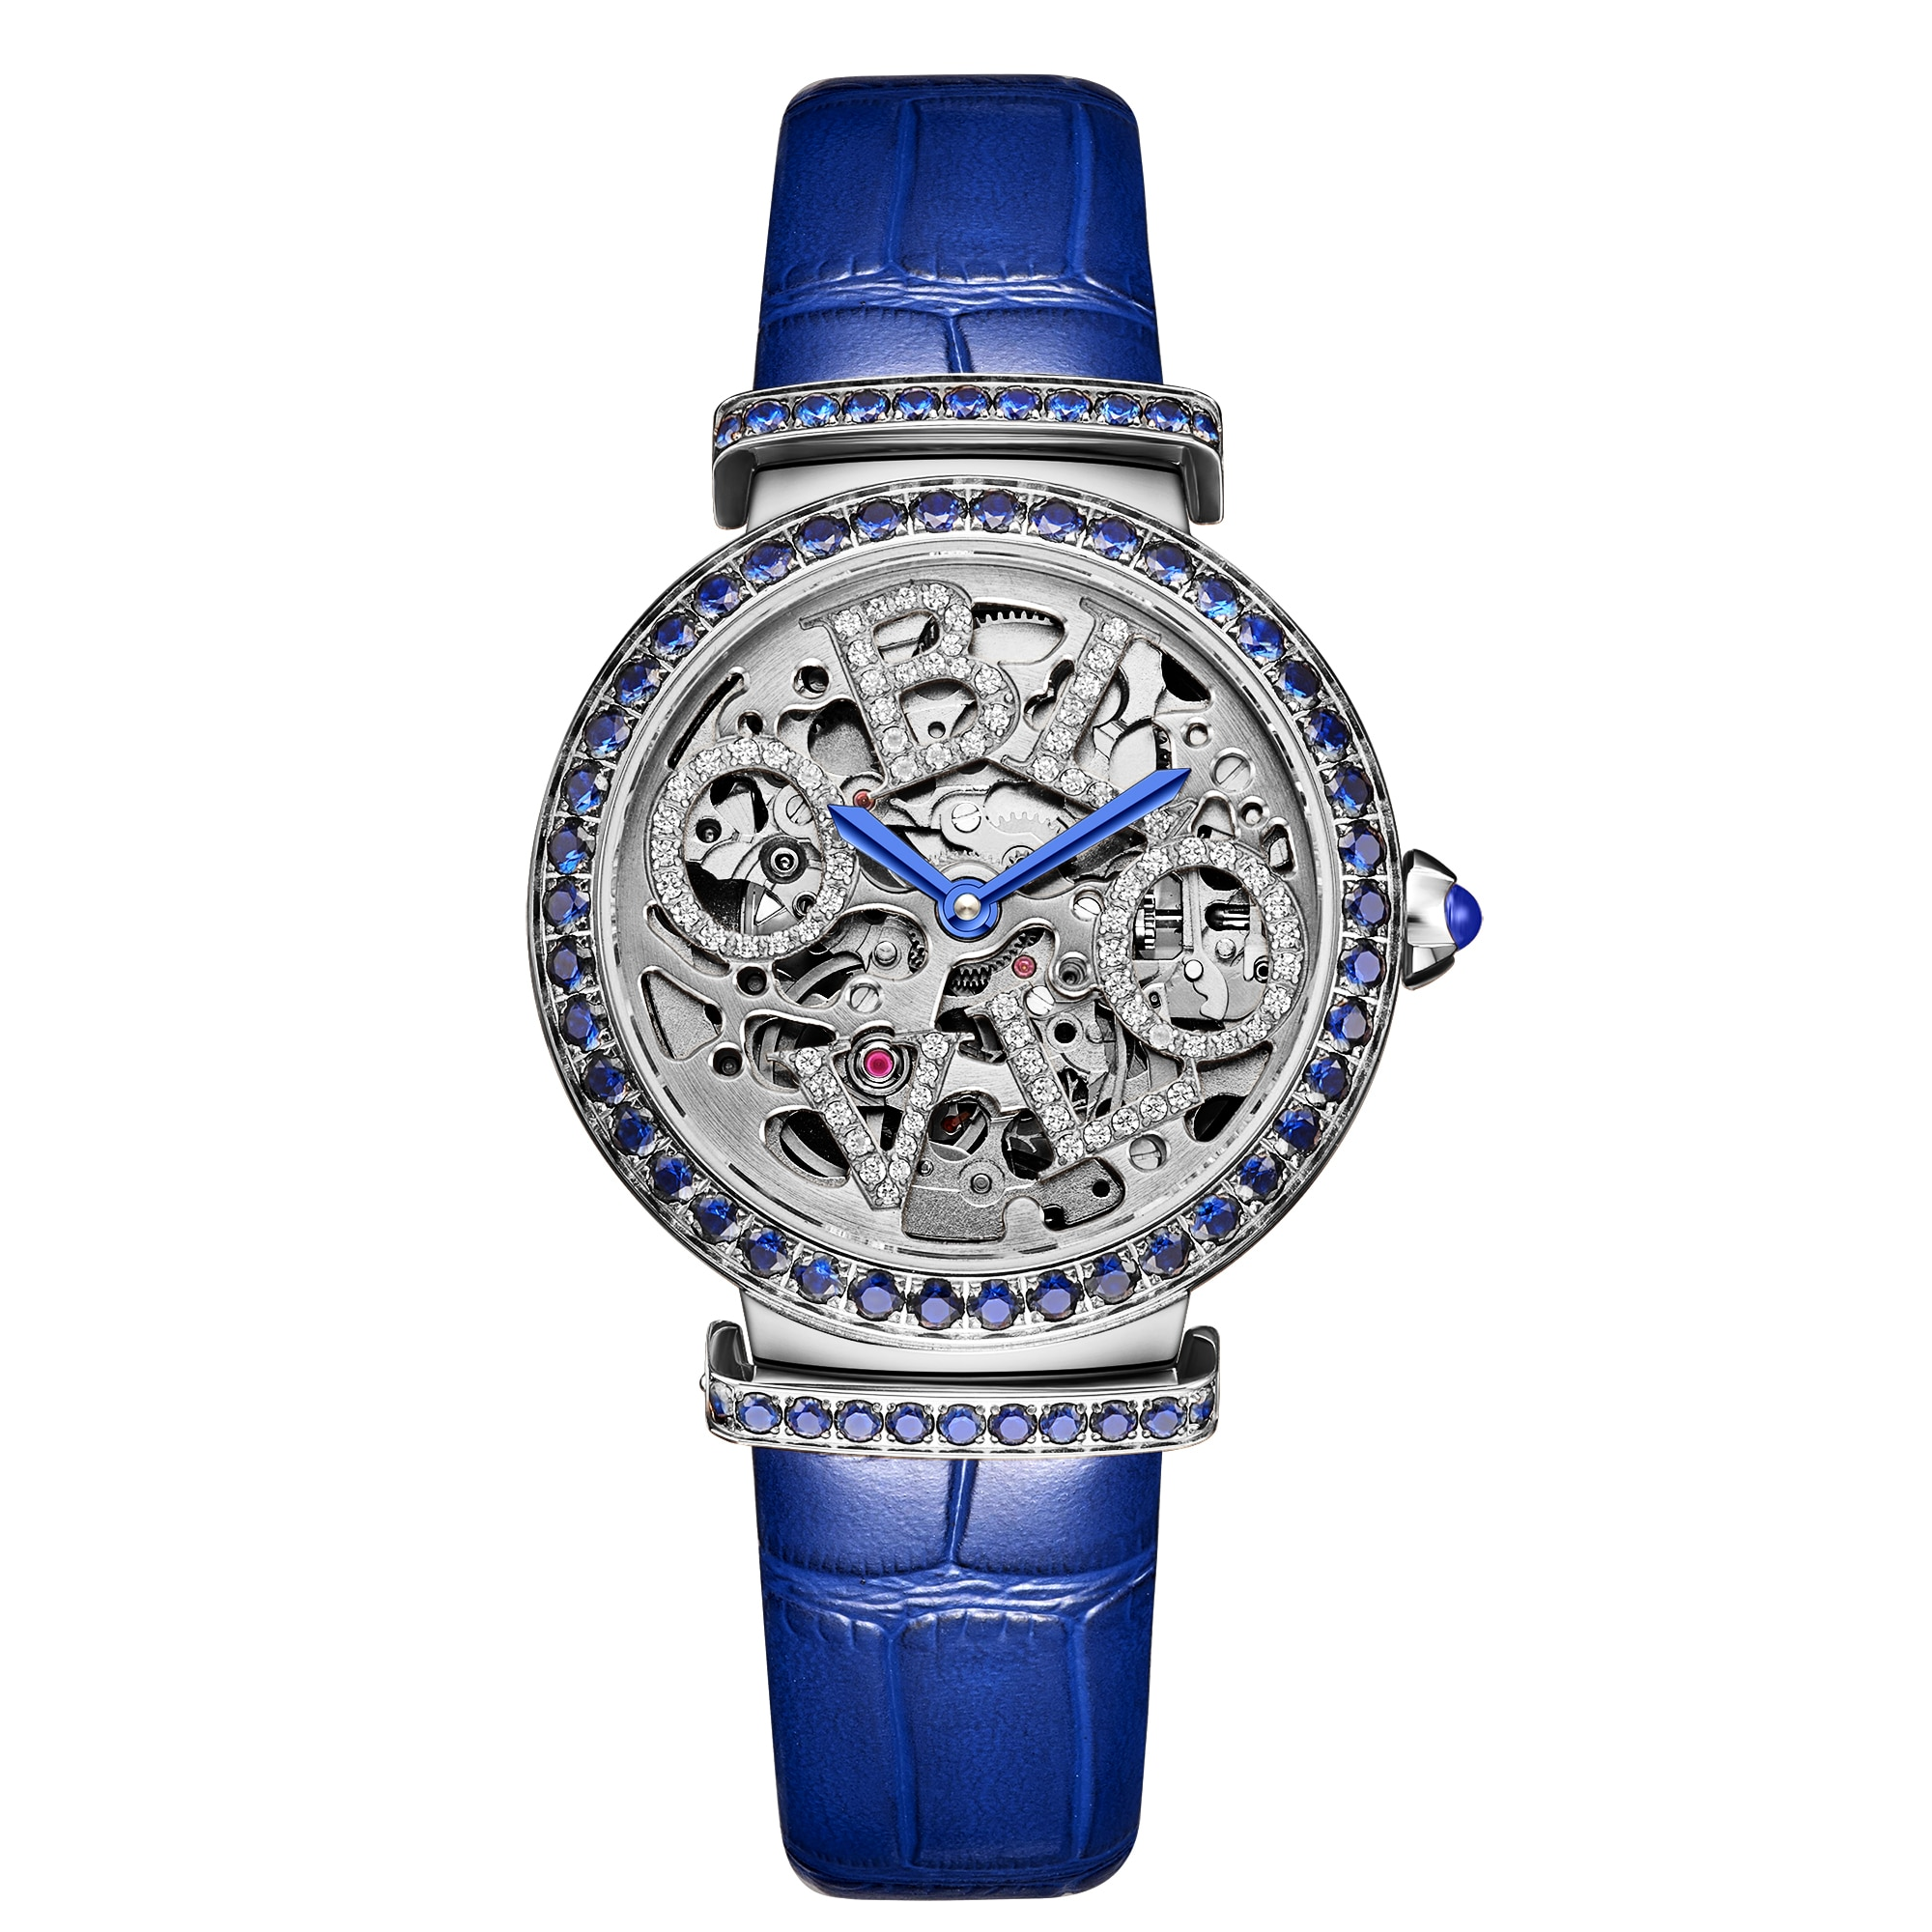 OBLVLO New Design Women Skeleton Automatic Watches Steel Top Brand Luxury Female Wrist Watch Leather Strap enlarge